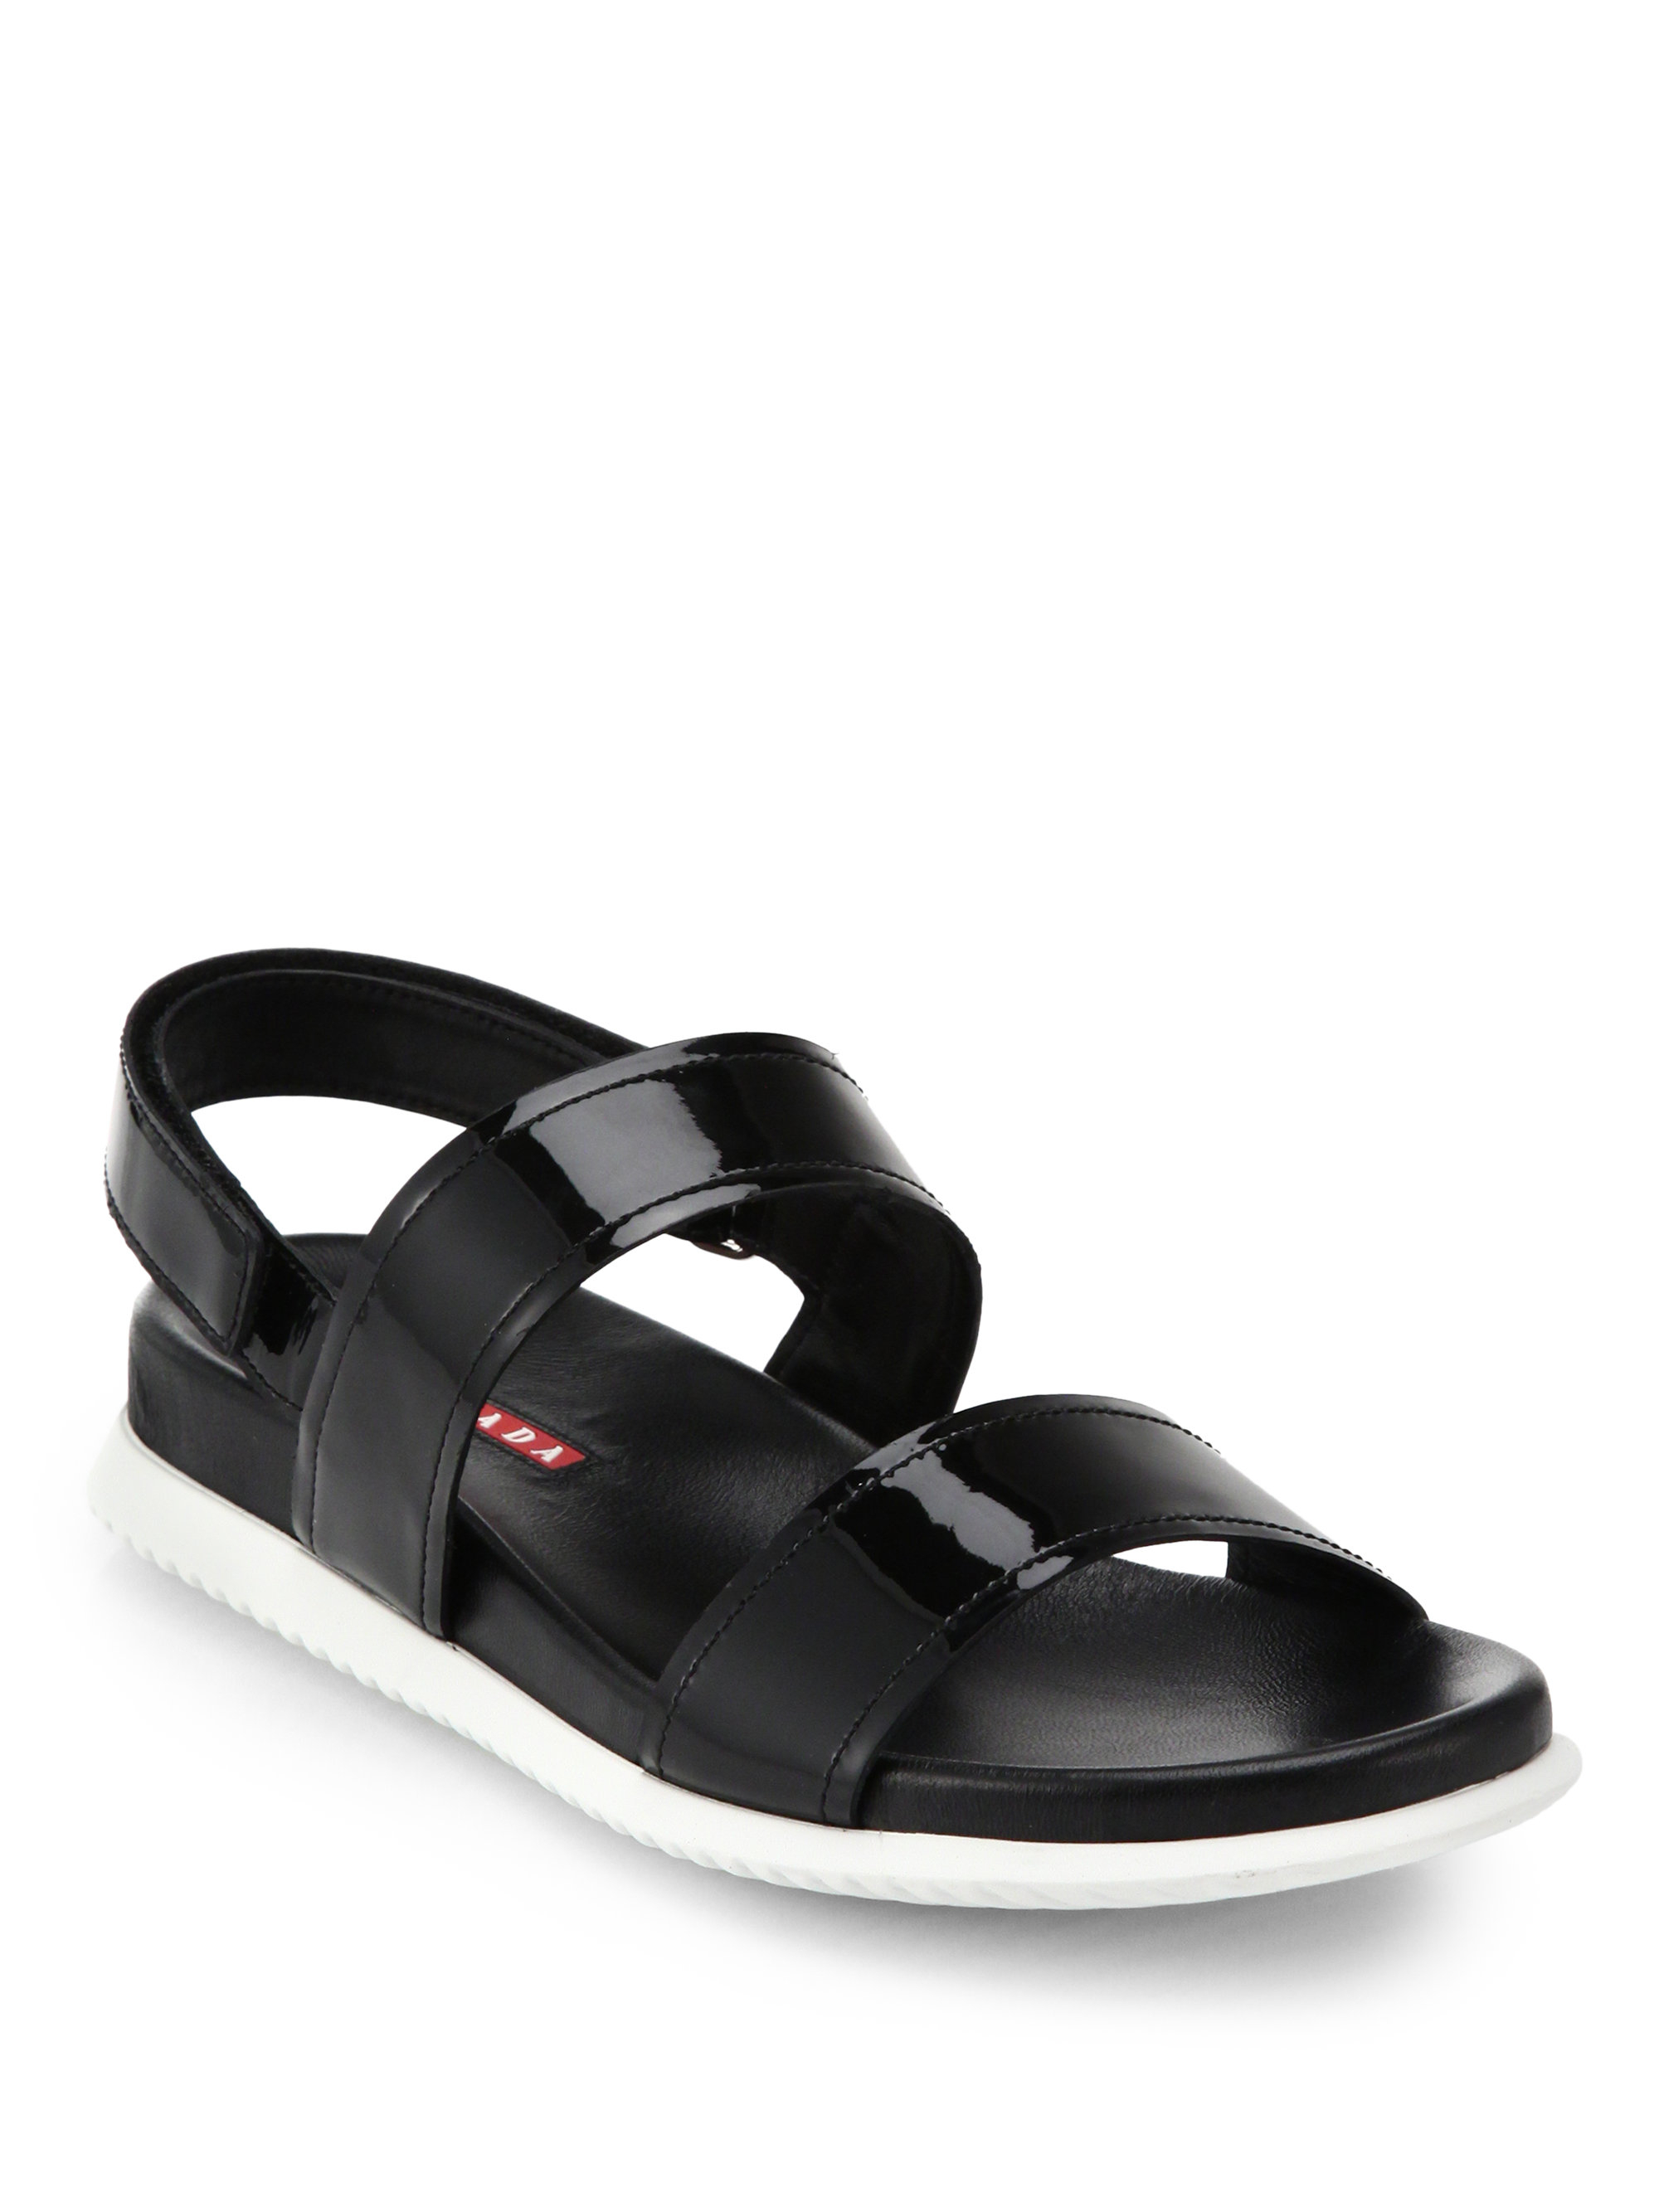 Lyst Prada Patent Leather Flat Sandals In Black